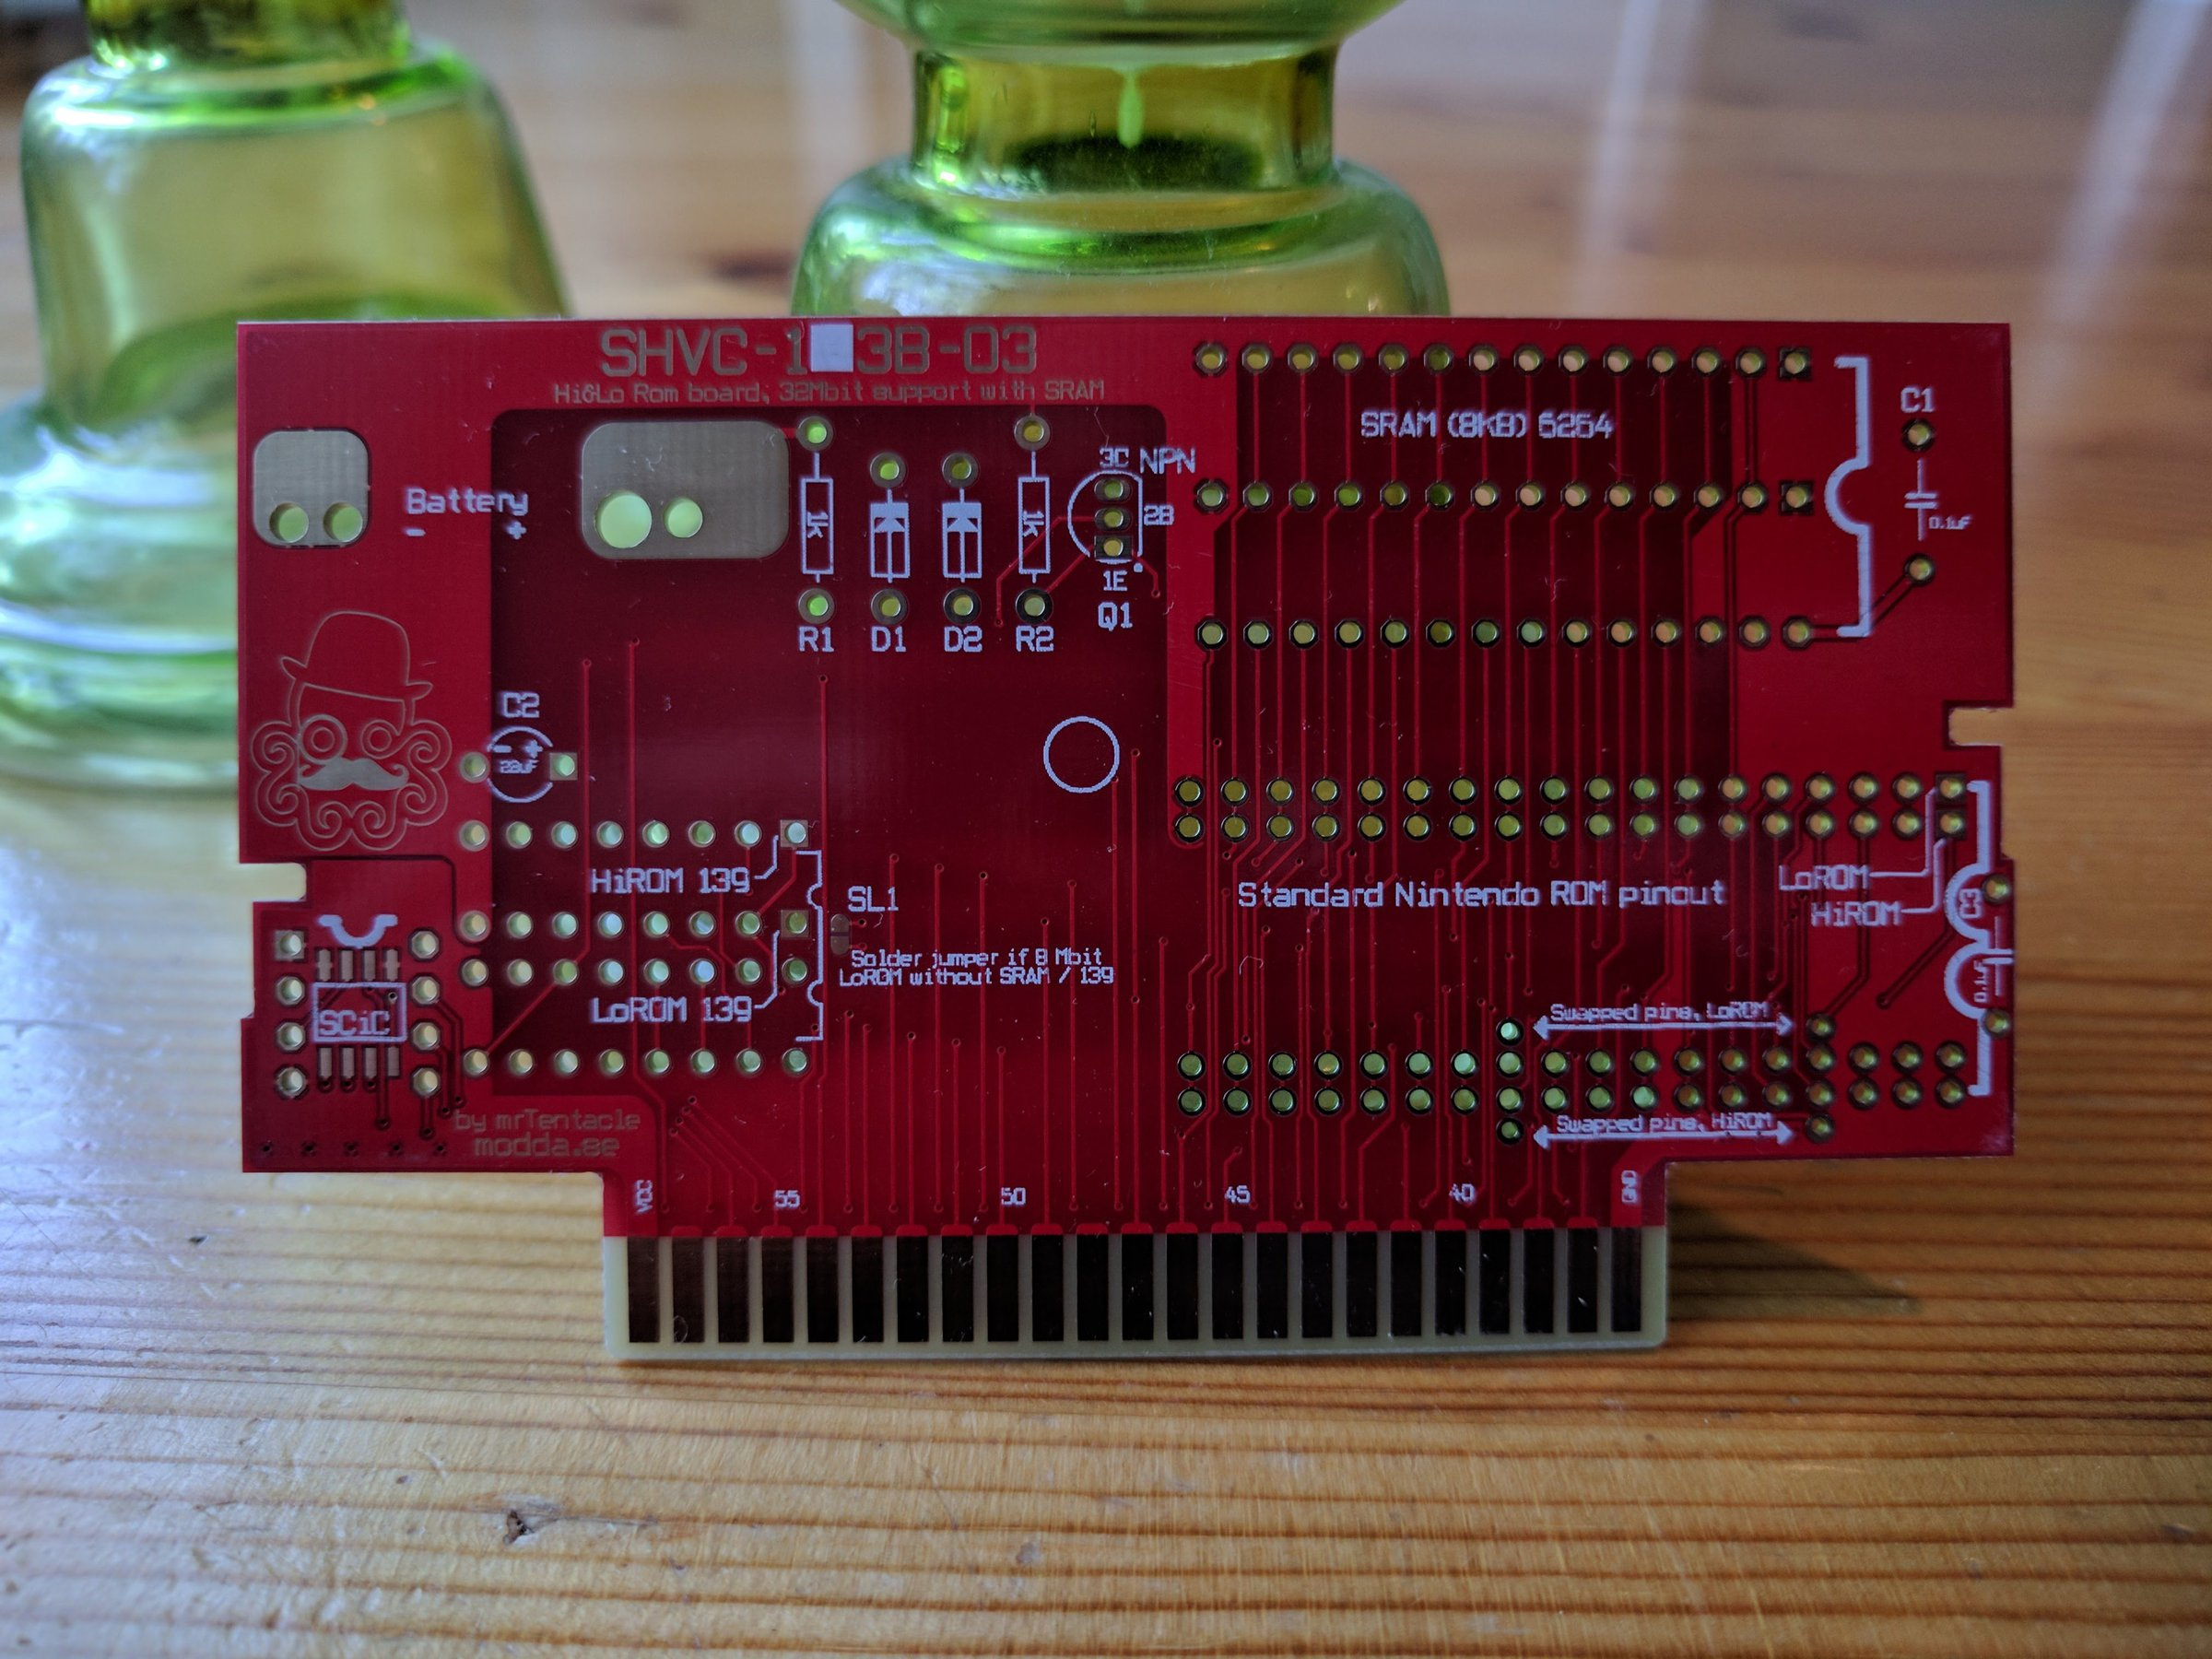 Snes Repro Pcb Build Your Own Carts From Mrtentacle On Tindie Diy How To Create Printed Circuit Boards 2